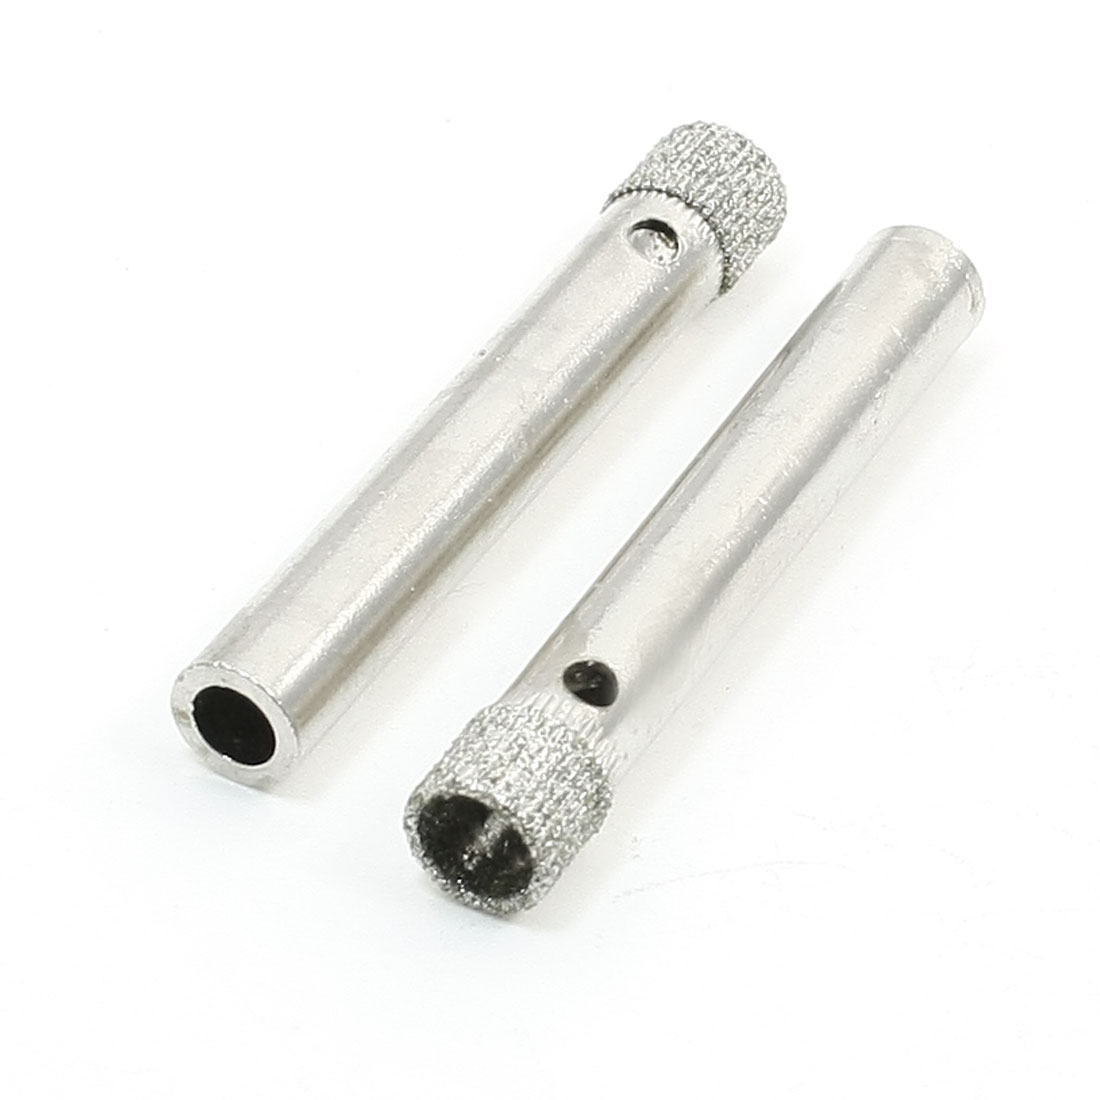 2 x 8mm Cutting Hole Diameter Diamond Coated Drill Bit Glass Hole Saw